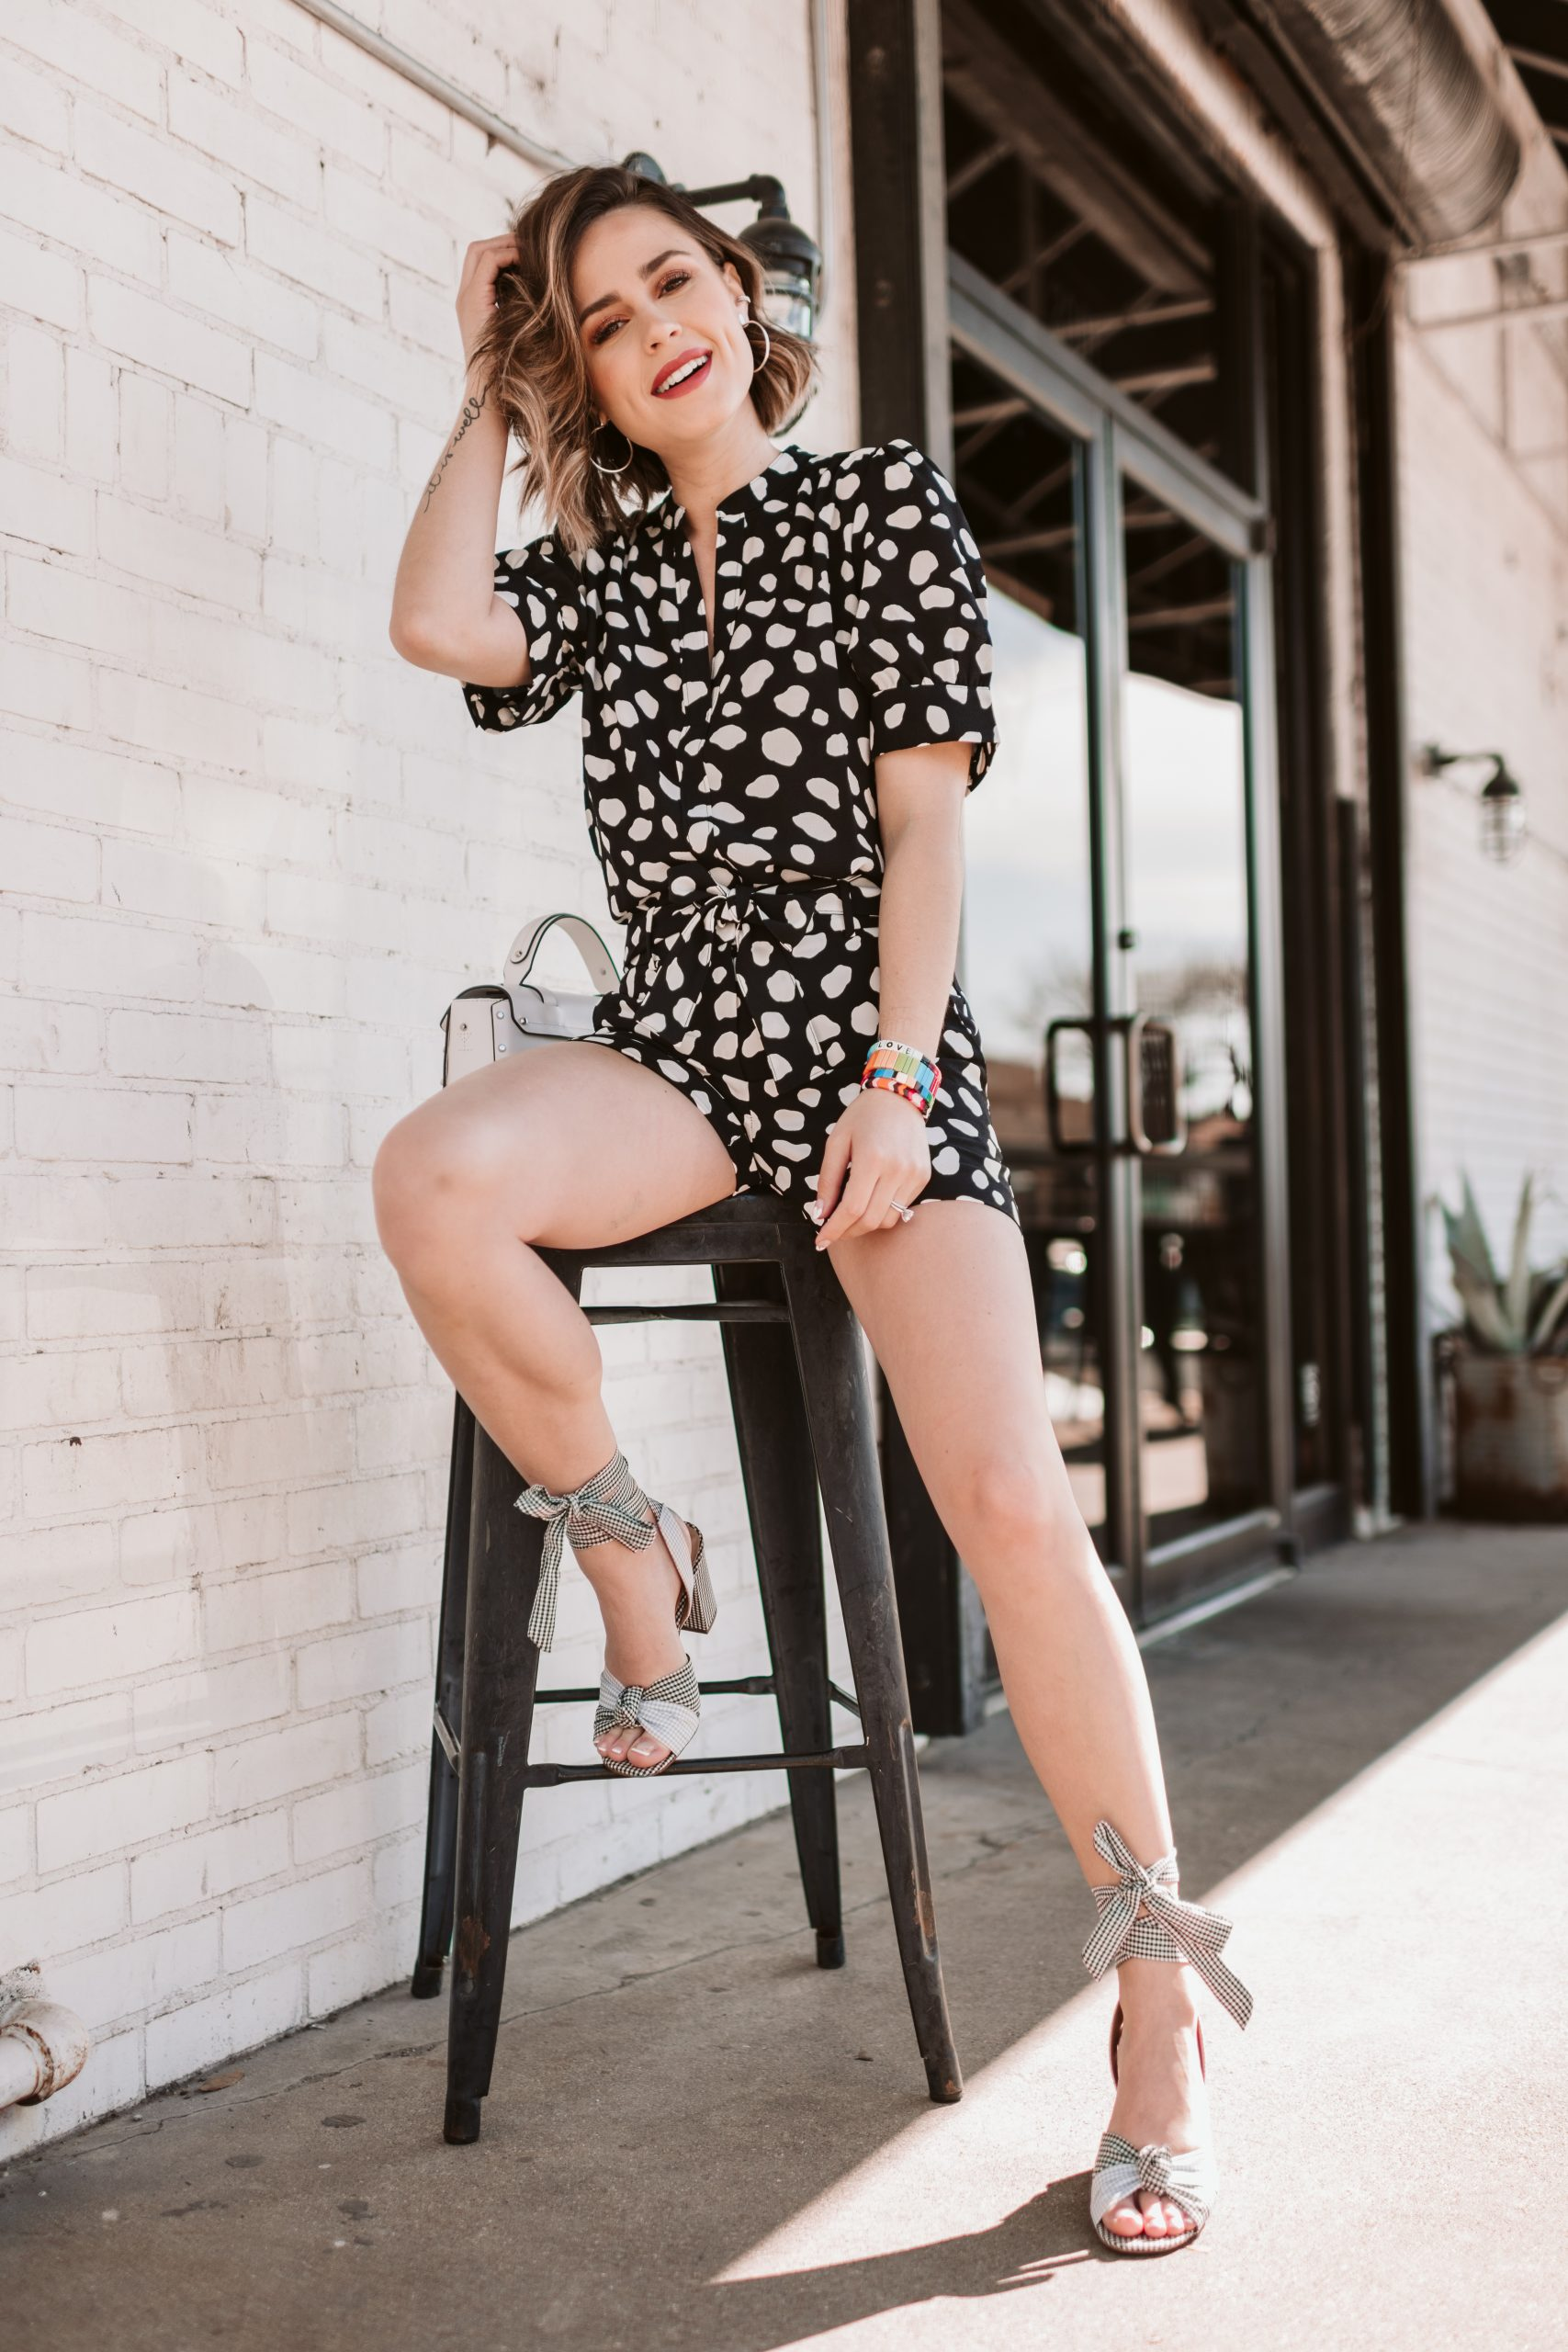 Houston fashion blogger Elly Brown wears a matching spot set from Ann Taylor with Gingham shoes